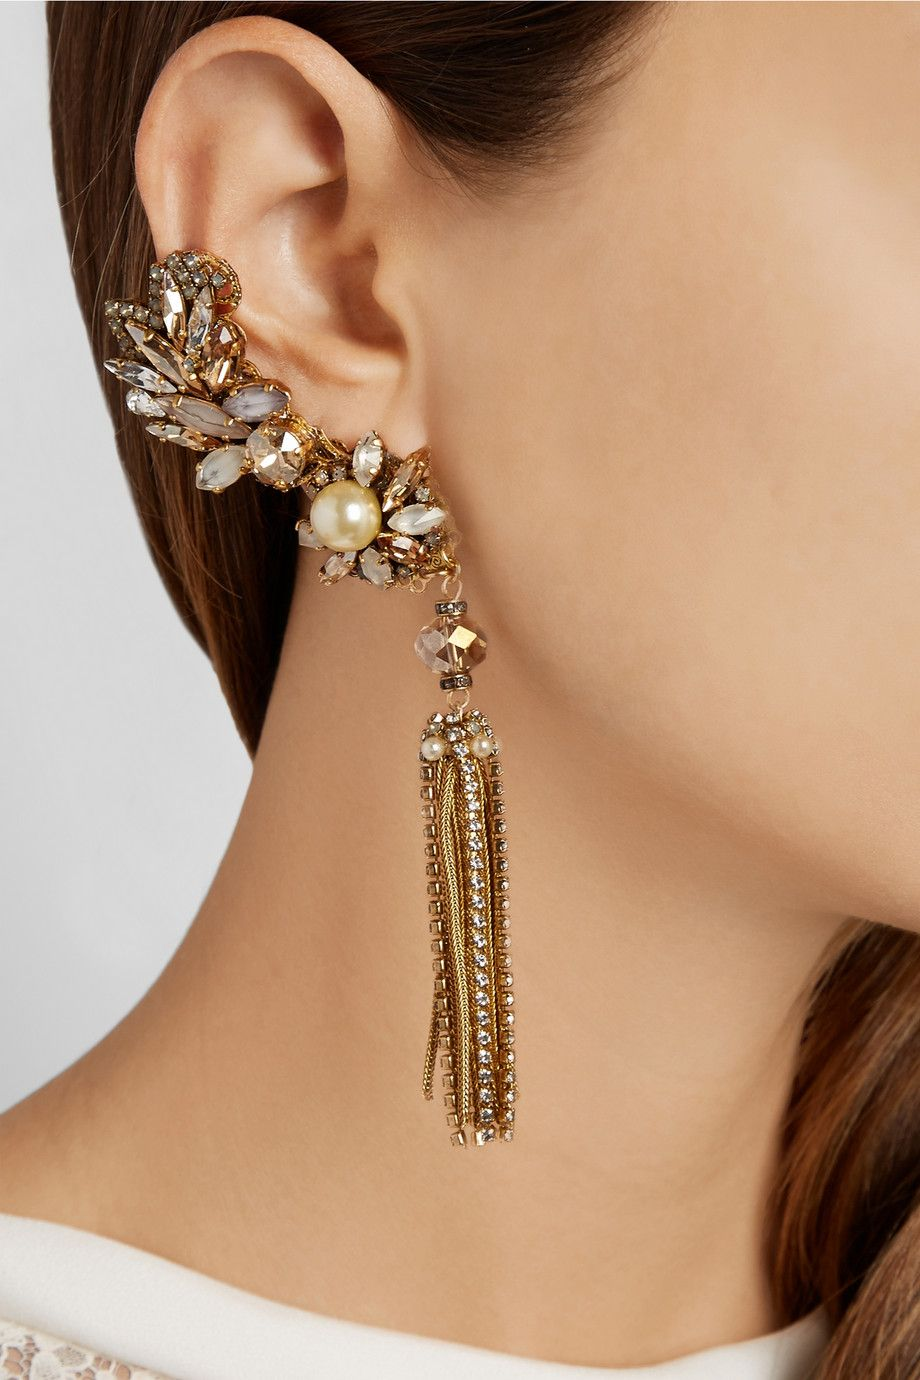 Erickson Beamon | Stratosphere gold-plated, Swarovski crystal and faux pearl earrings |Golden Dream